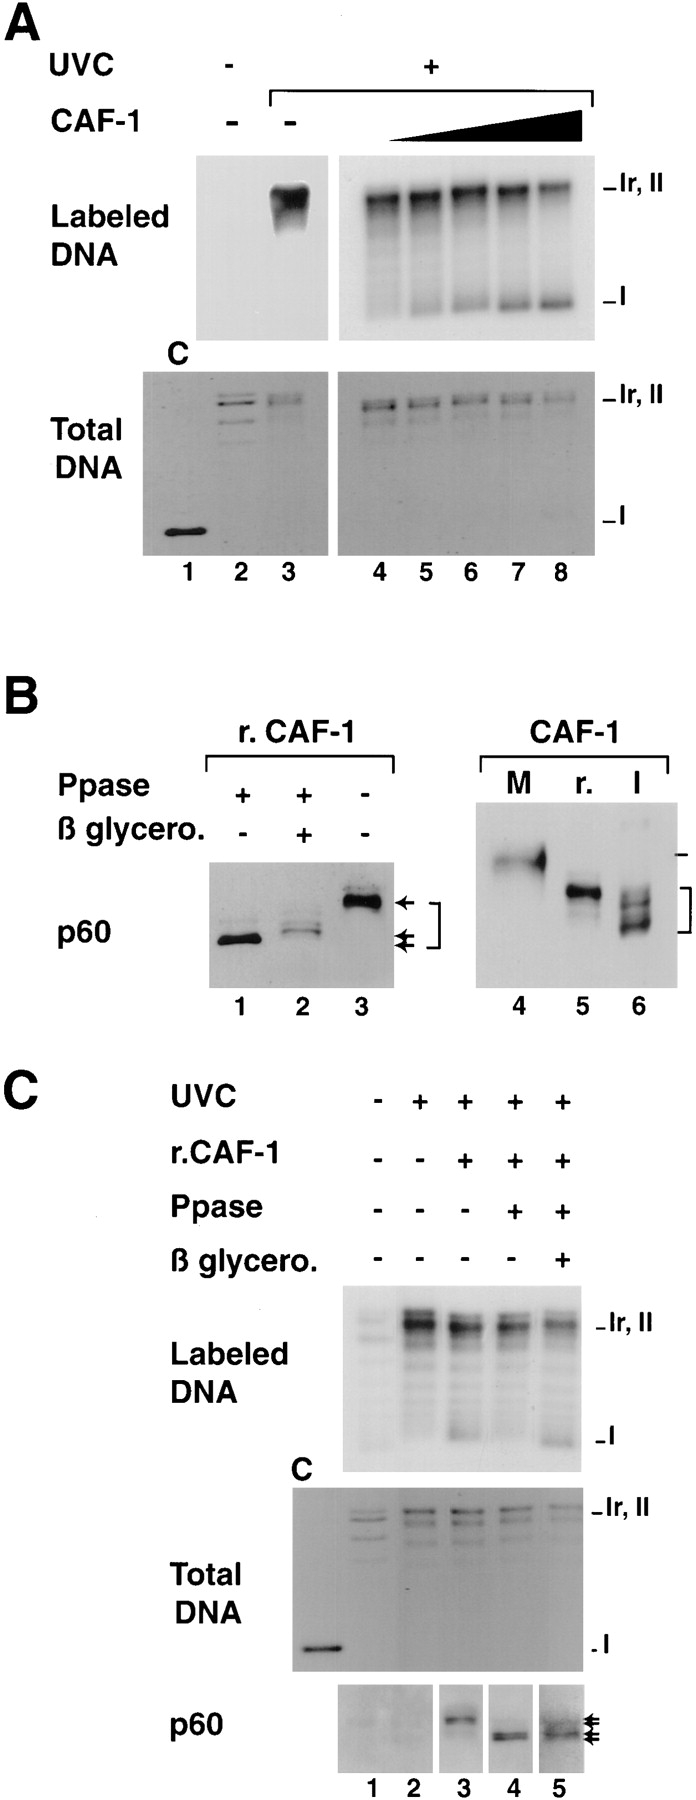 Titration conditions for recombinant CAF-1 to support nucleosome assembly during UV-induced synthesis and competence of various phosphorylated forms in the assay. ( A ) Plasmid DNA, either treated with UV-C at 500 J/m 2 (+) or not treated (−) were incubated in a cytosolic extract in the presence of [α- 32 P] dCTP. Complementation in the supercoiling assay was achieved with increasing amounts of recombinant CAF-1 ( solid triangle ), 0 ng (lanes 2 , 3 , and 4 ), 5 ng (lane 5 ), 10 ng (lane 6 ), 20 ng (lane 7 ), or 40 ng (lane 8 ). Deproteinized DNA was purified and analyzed by agarose gel electrophoresis. The incorporation of radiolabel due to the UV-dependent DNA synthesis was visualized by autoradiography ( Labeled DNA ) and the total population of DNA molecules by ethidium bromide staining of the gel ( Total DNA ). Plasmids were processed as indicated in Materials and Methods. The positions of the supercoiled (form I ), nicked (form Ir ), and closed circular (form II ) forms of plasmid DNA are indicated. Control supercoiled DNA was run in parallel (lane 1 ). ( B ) Recombinant CAF-1 was treated with Lambda phosphatase alone (lane 1 ), in the presence of β-glycerophosphate (lane 2 ) or mock treated (lanes 3 and 5 ), mitotic extract ( M ) and nuclear interphasic extract ( I ) were prepared as described (see Materials and Methods). All samples were processed for Western blot analysis and detection with the polyclonal anti–p60 antibody ( p60 ). Bracket , various phosphorylation forms. ( C ) The three sources of recombinant CAF-1 ( r.CAF-1 ): treated with Lambda phosphatase alone (lane 4 ), in the presence of β-glycerophosphate (lane 5 ), or mock treated (lane 3 ) (shown in B , left ) were used in the assay as described above. The amount added per reaction was 10 ng (defined as the critical amount in A ). The presence and amount of the phosphorylated p60 subunit of CAF-1 (exogenous and endogenous) at the end of each reaction was assessed by Western blotting using the polyclonal anti-p60 antibody ( p60 ). Asterisk , slowest migrating phosphorylated form of p60.